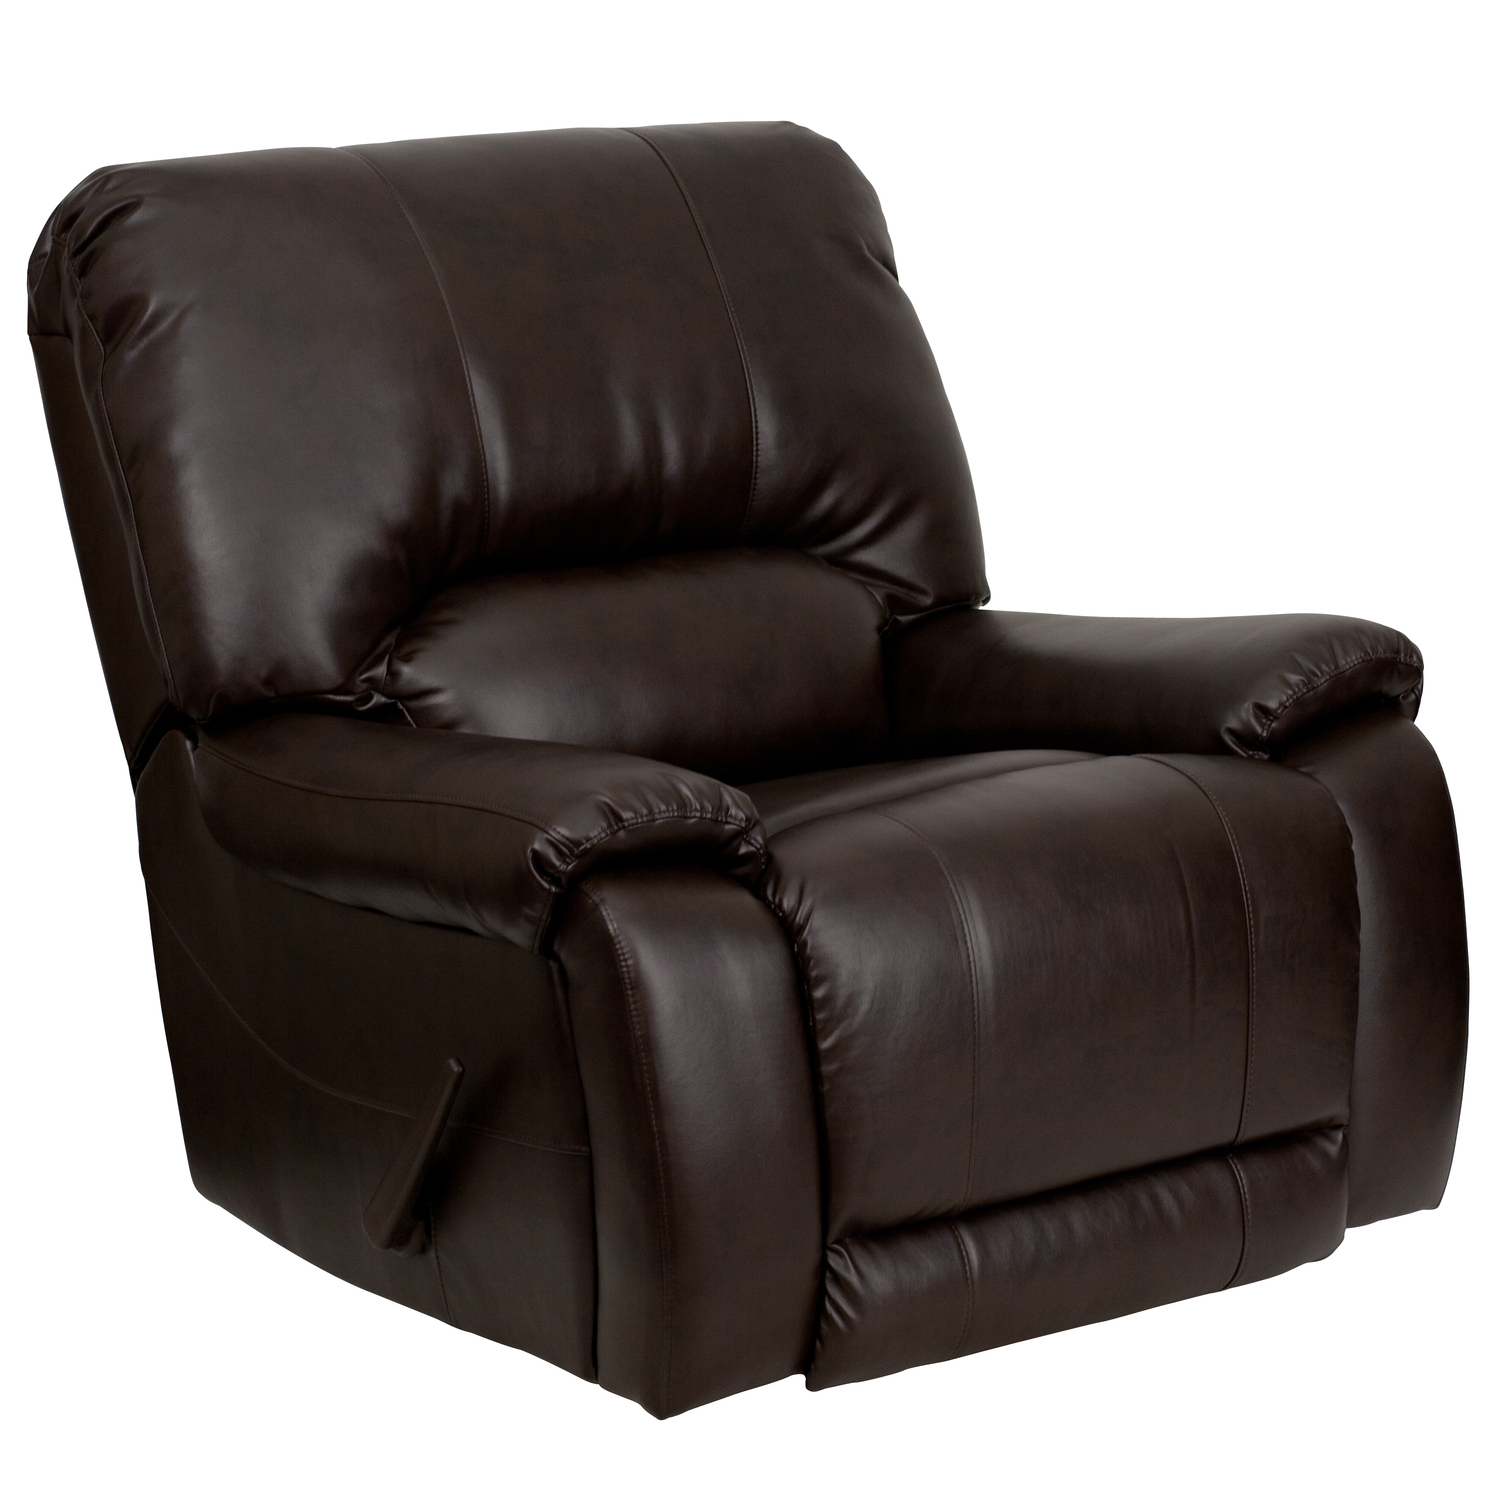 brown leather recliner chair patio cushion covers flash furniture overstuffed lever rocker